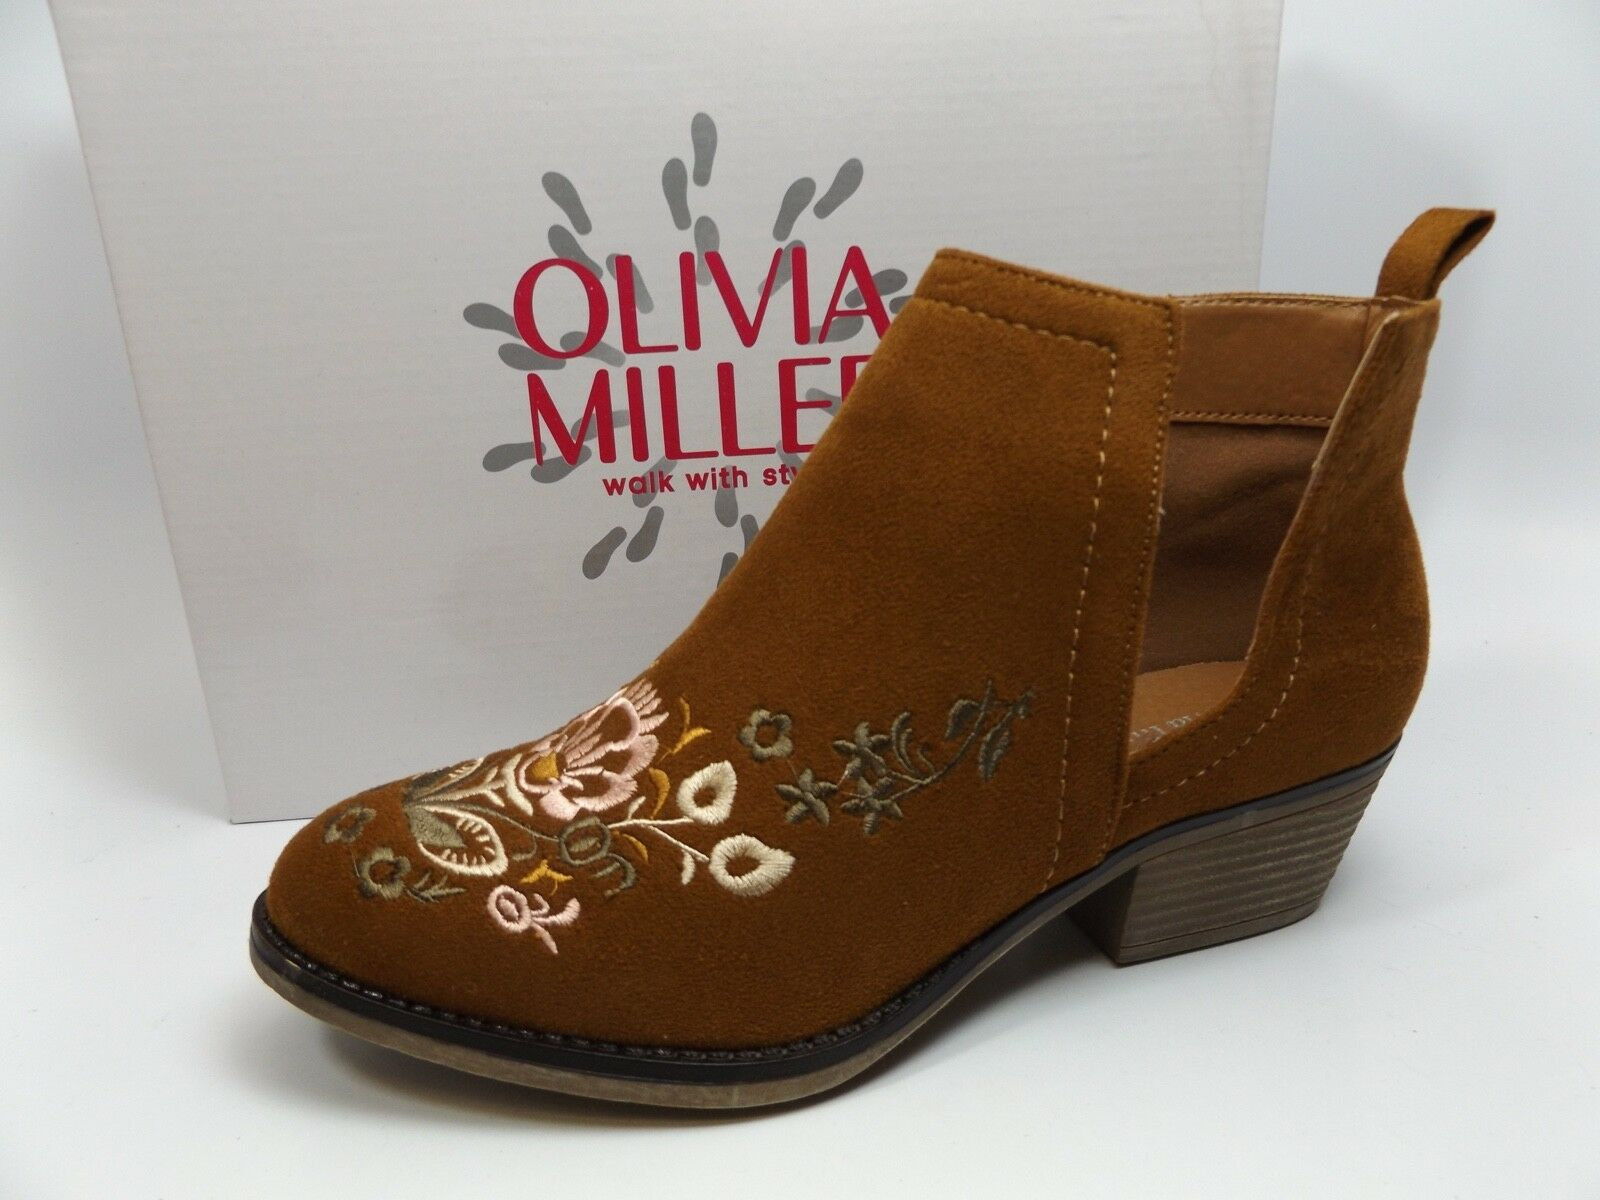 Olivia Miller pinkwood Embroidered Faux Suede Booties Womens SZ 8.5 M BROWN 8901